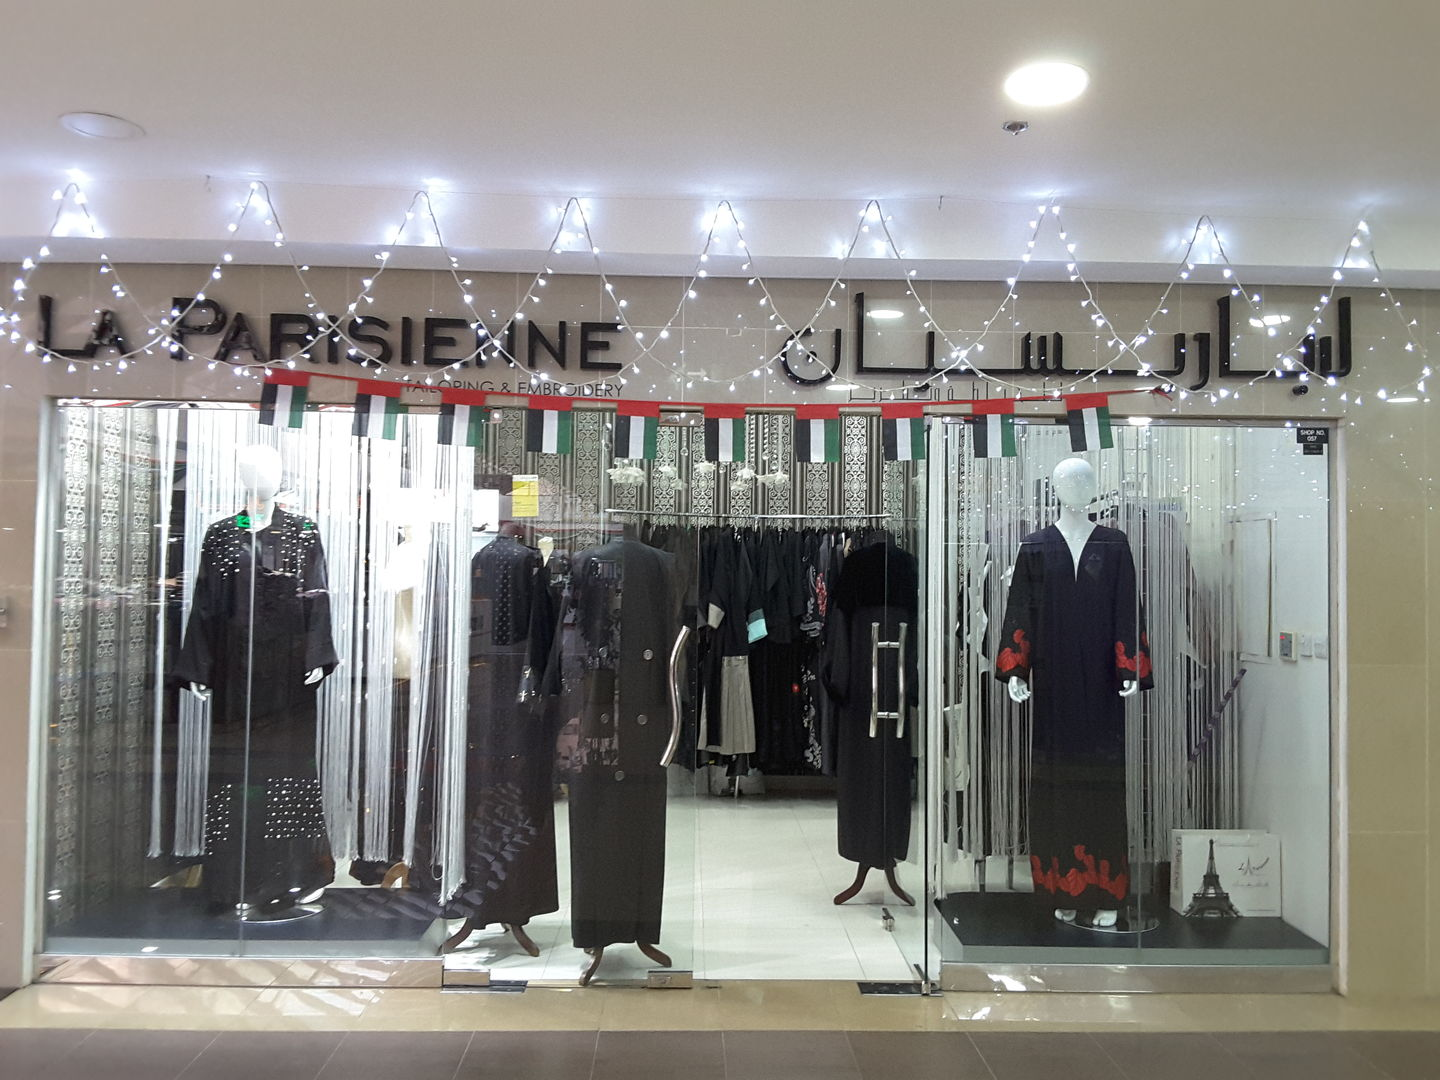 HiDubai-business-la-parisienne-tailoring-embroidery-shopping-apparel-mirdif-dubai-2